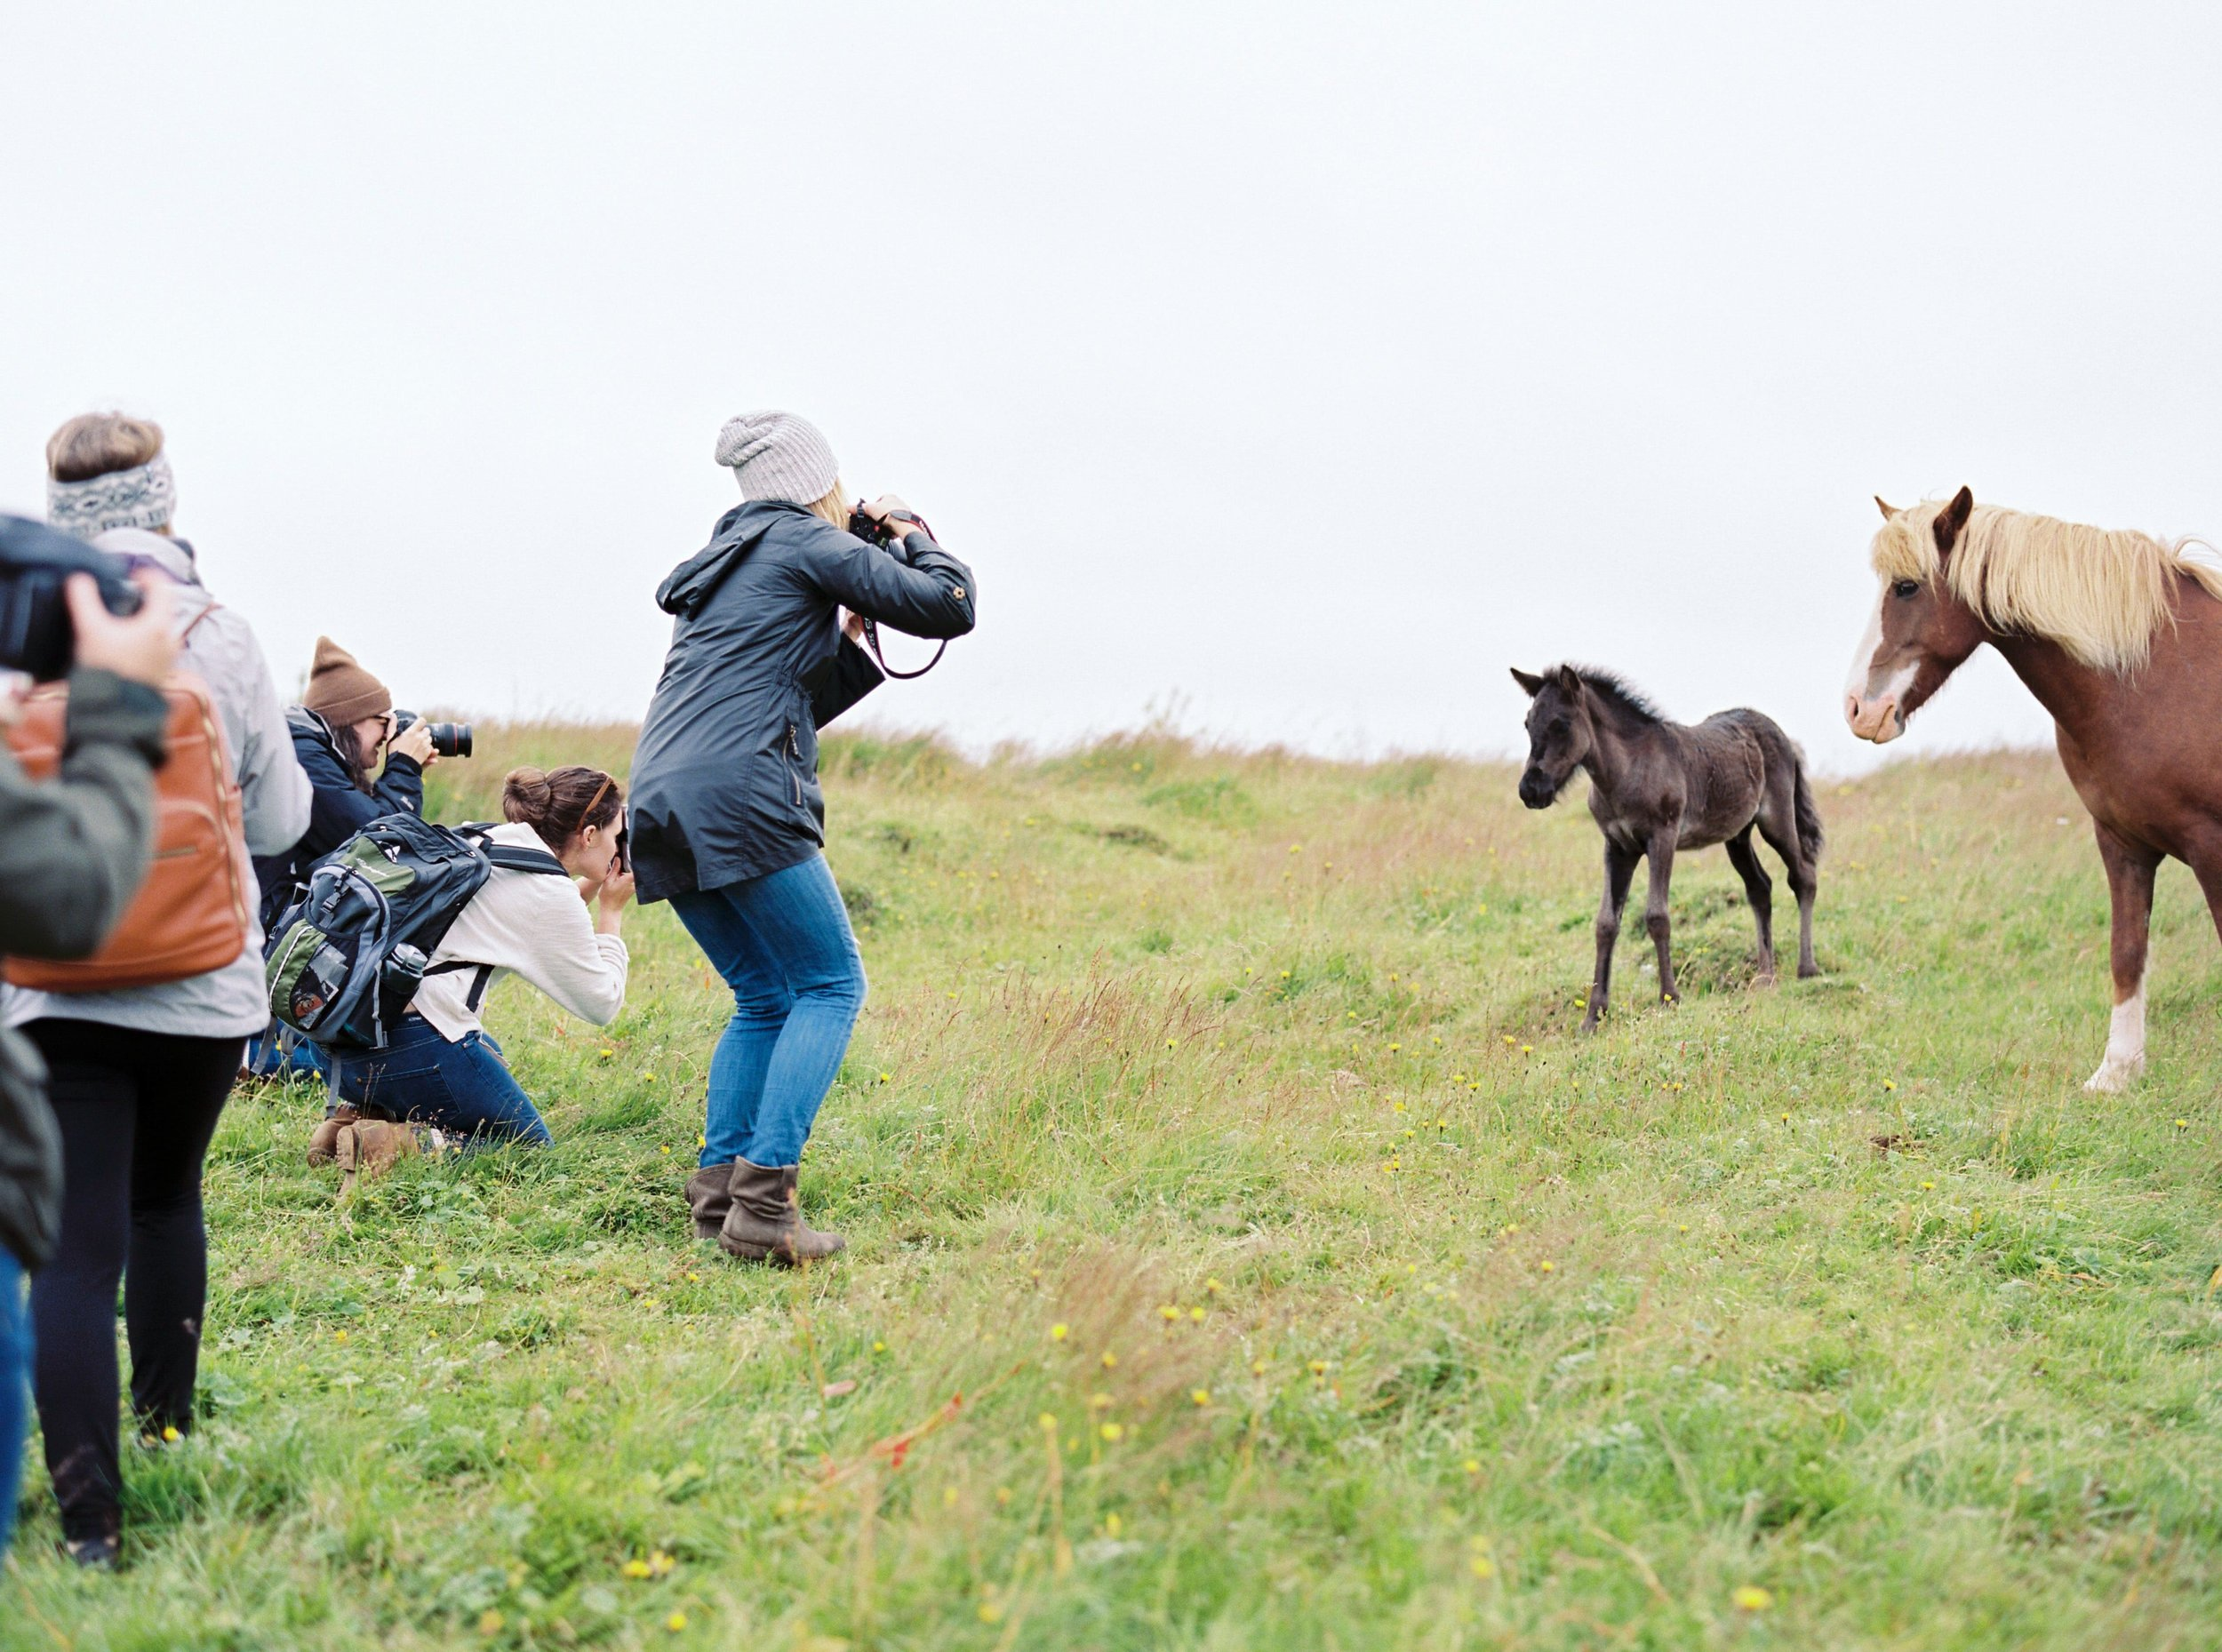 Horses in Iceland by Kristin Sweeting now on Cottage Hill73.jpg